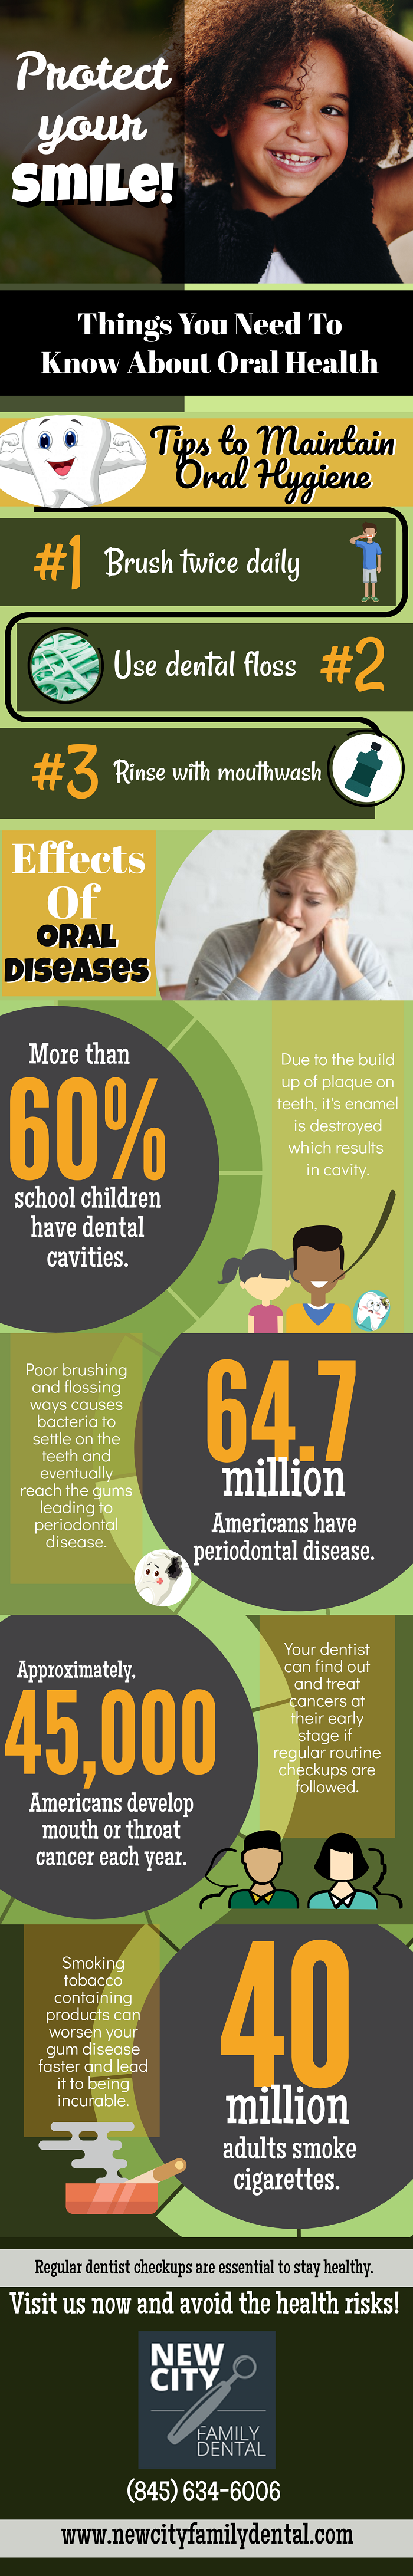 Things You Need To Know About Oral Health